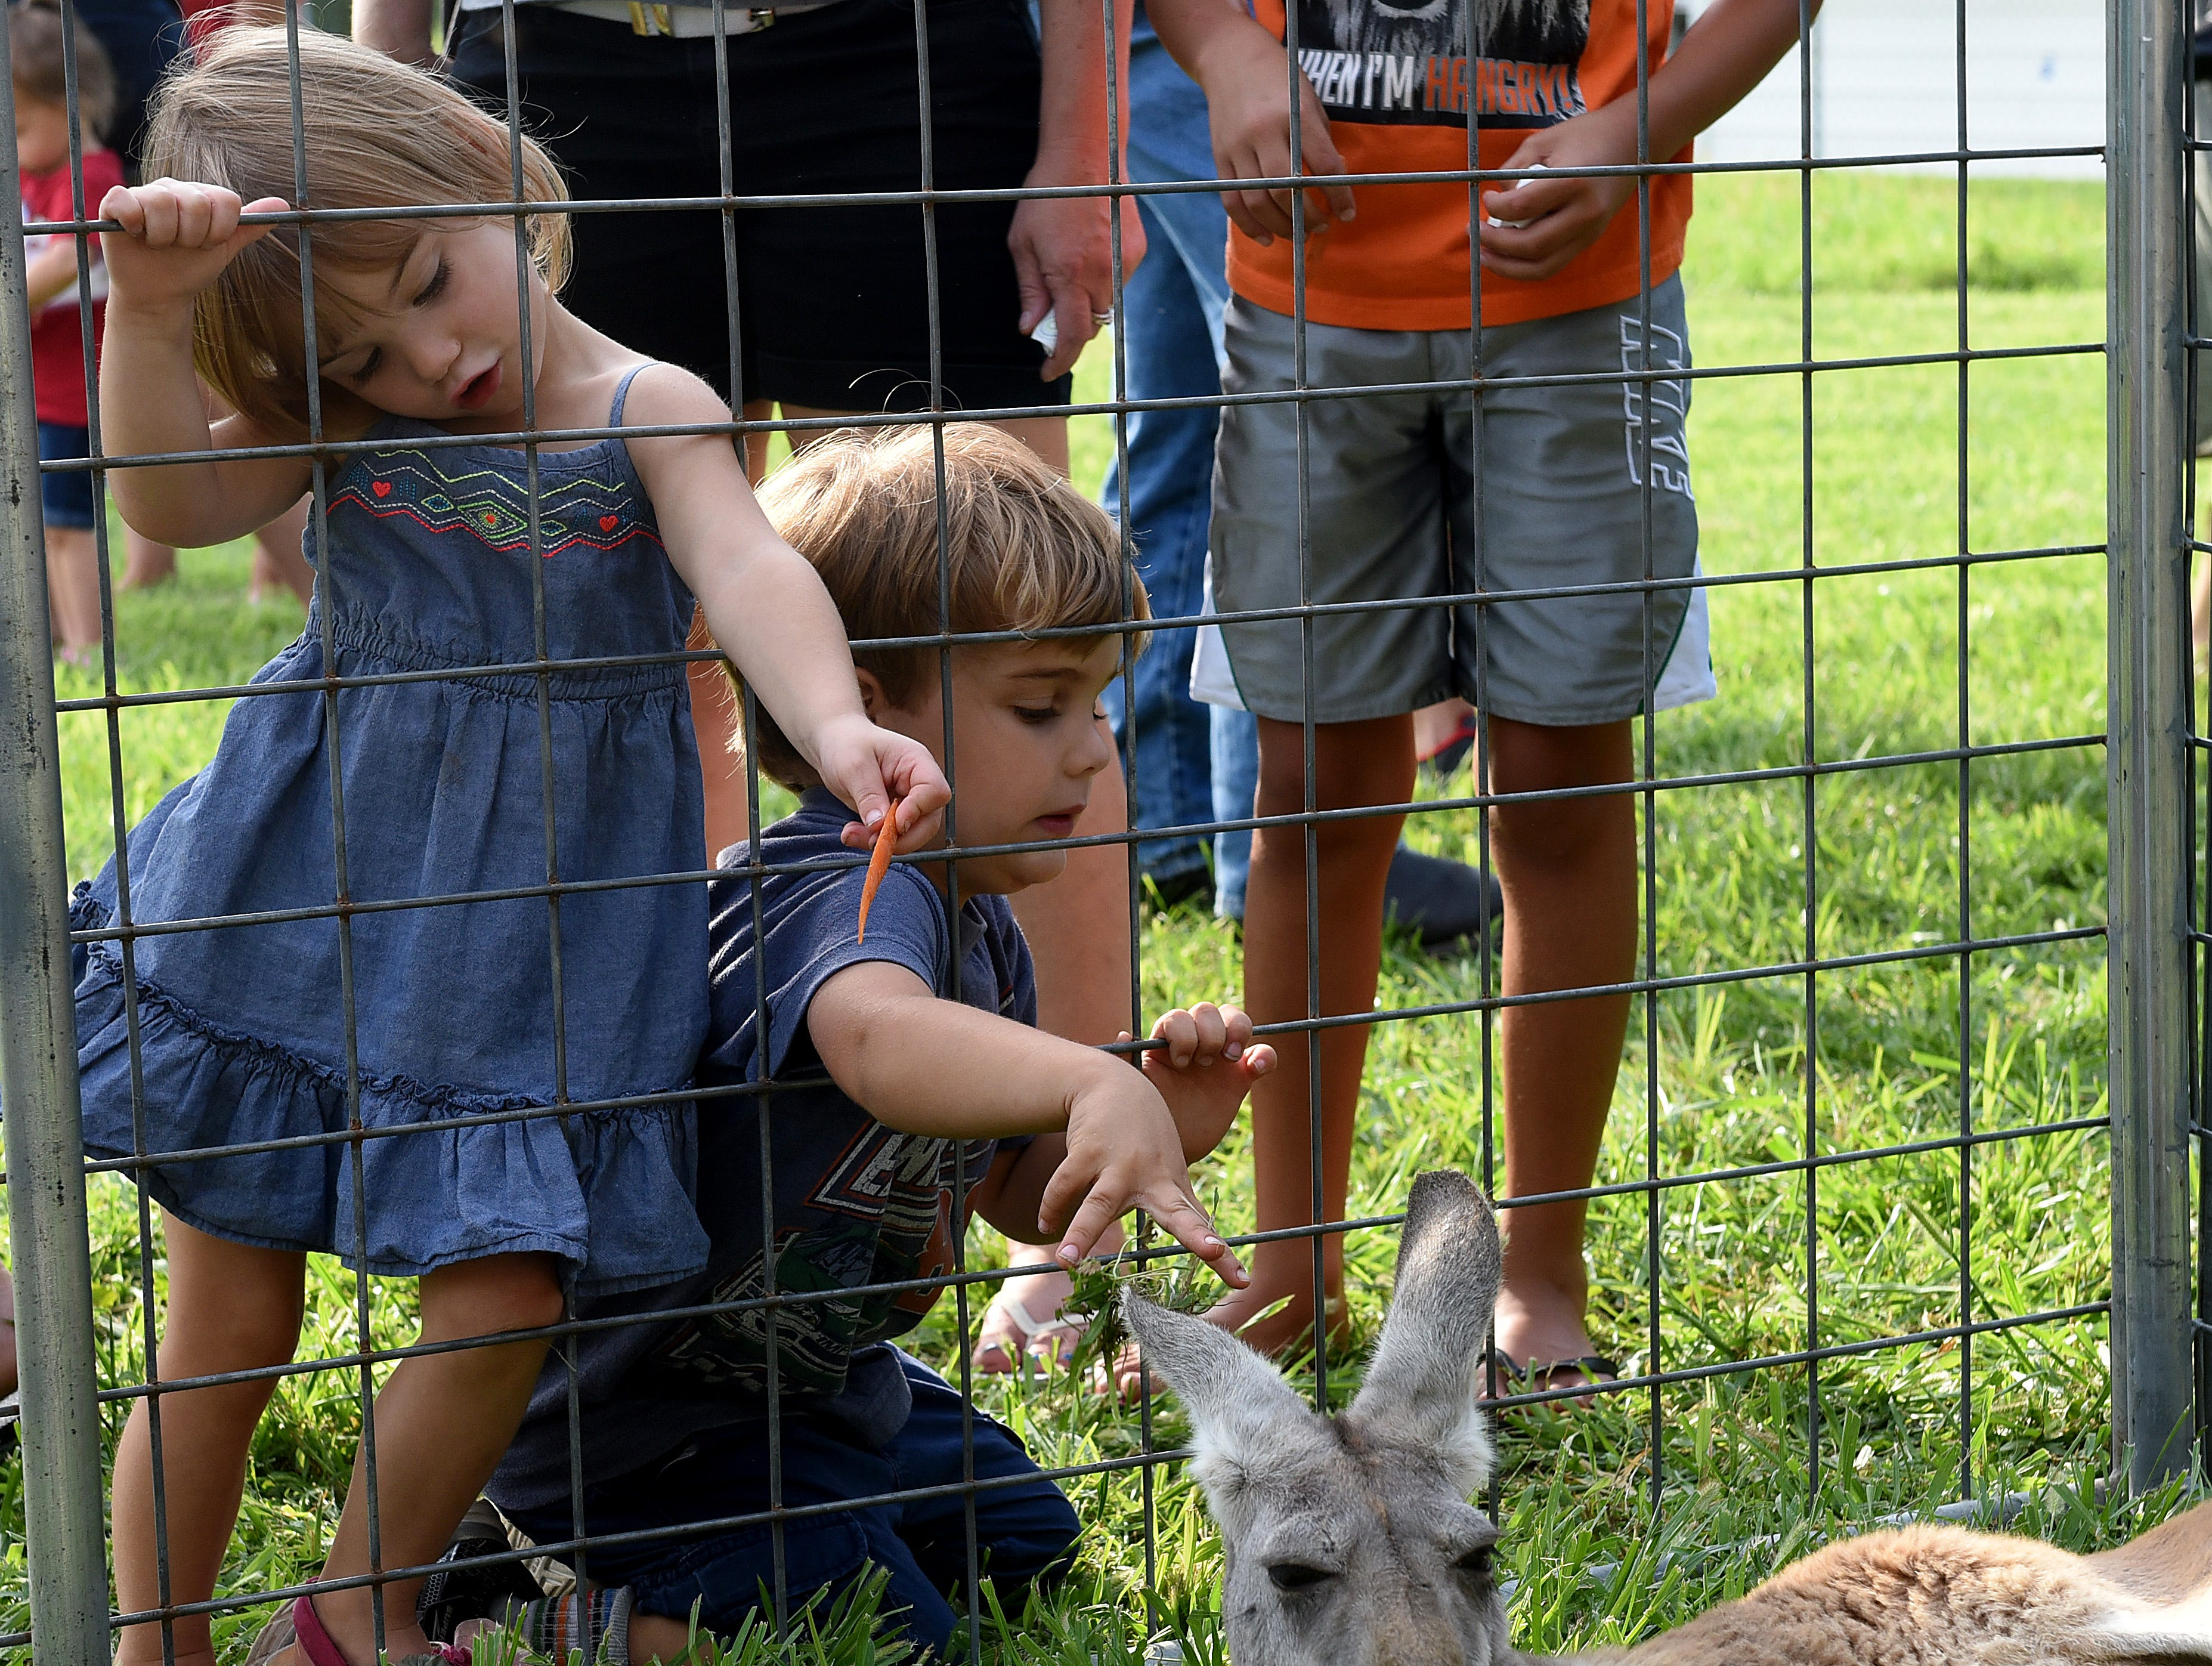 Siblings Claire, 3, and Harrison Ott, 4, feed and pet a kangaroo during a visit of the Jungle Island Zoo out of Delphos visited the Pataskala Public Library on Thursday, Aug. 9, 2018.